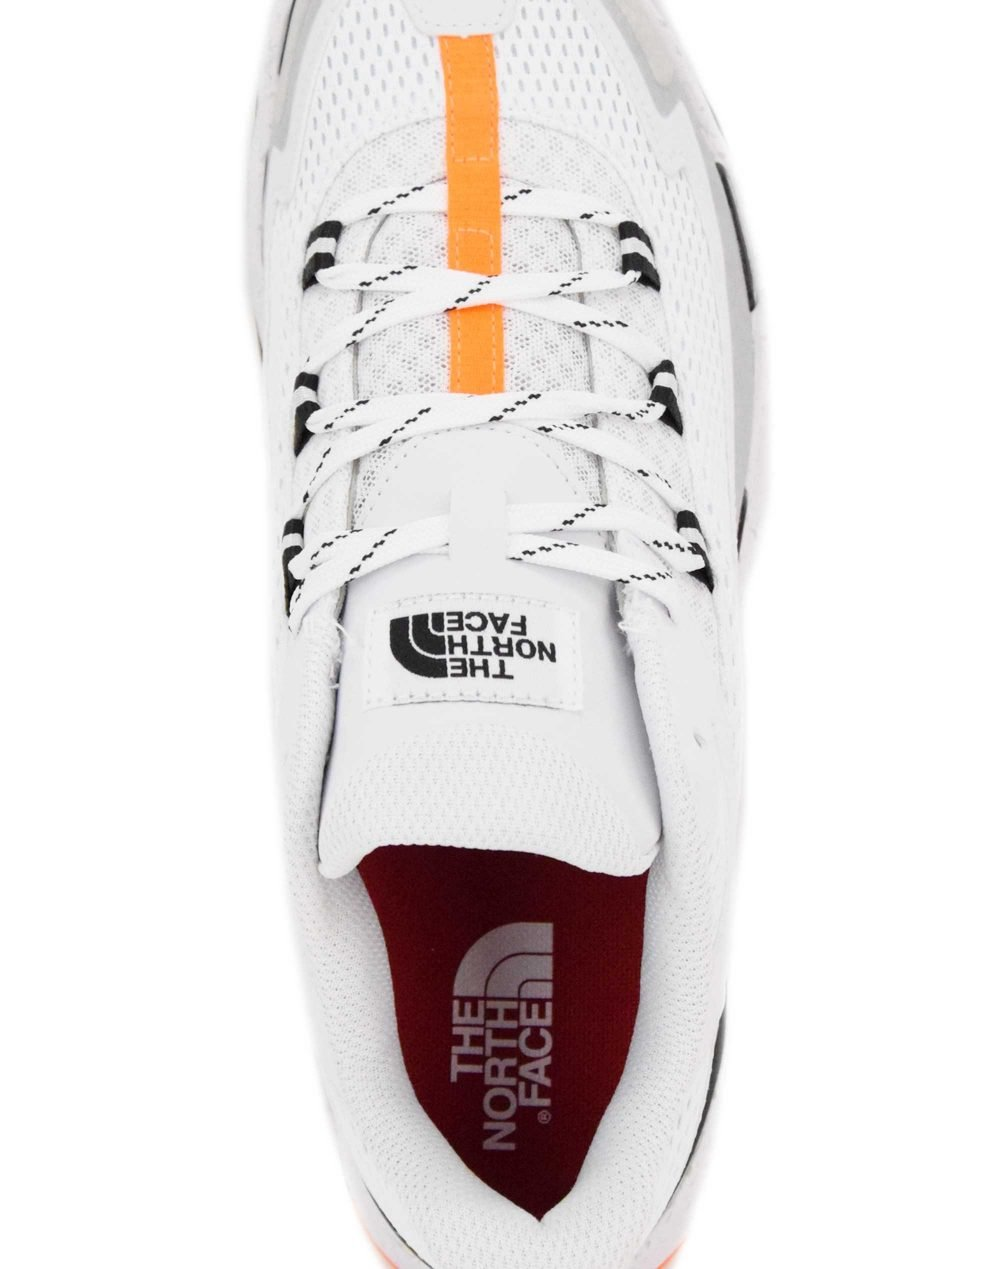 The North Face Vectiv Taraval (NF0A52Q1LA91) White/Black